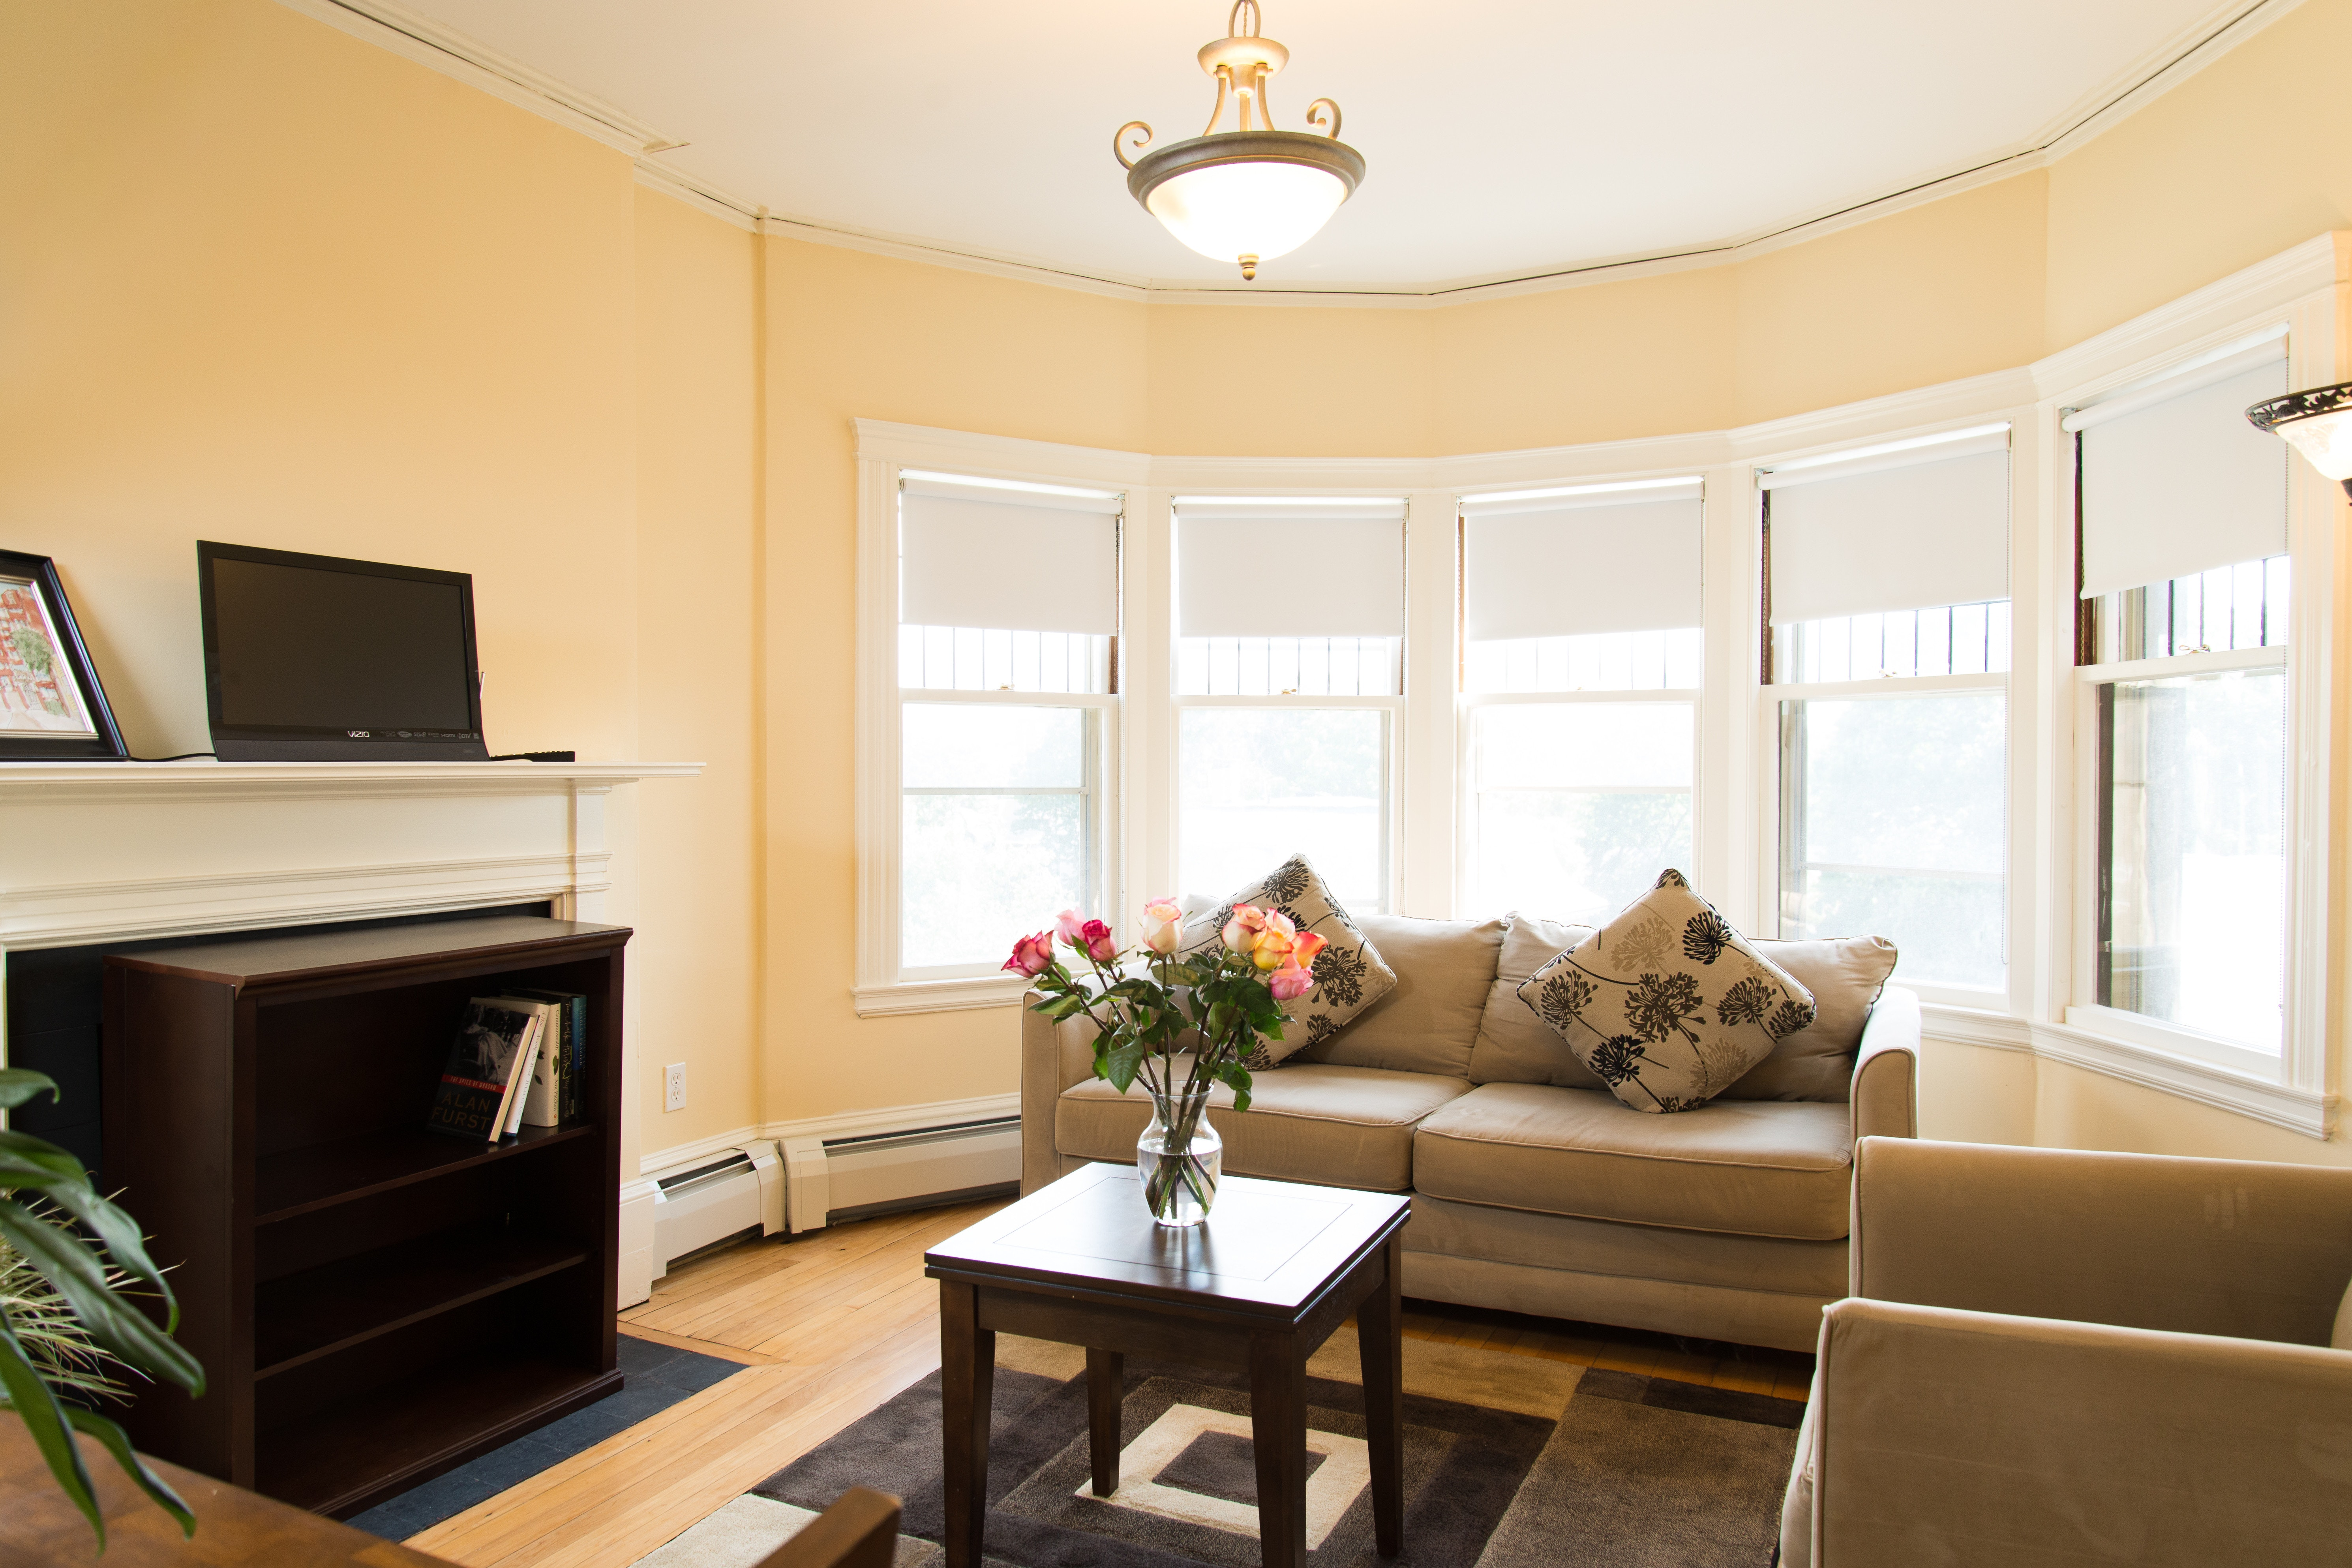 Living room of 83 Brattle Street one bedroom with hallway apartment with furnishings